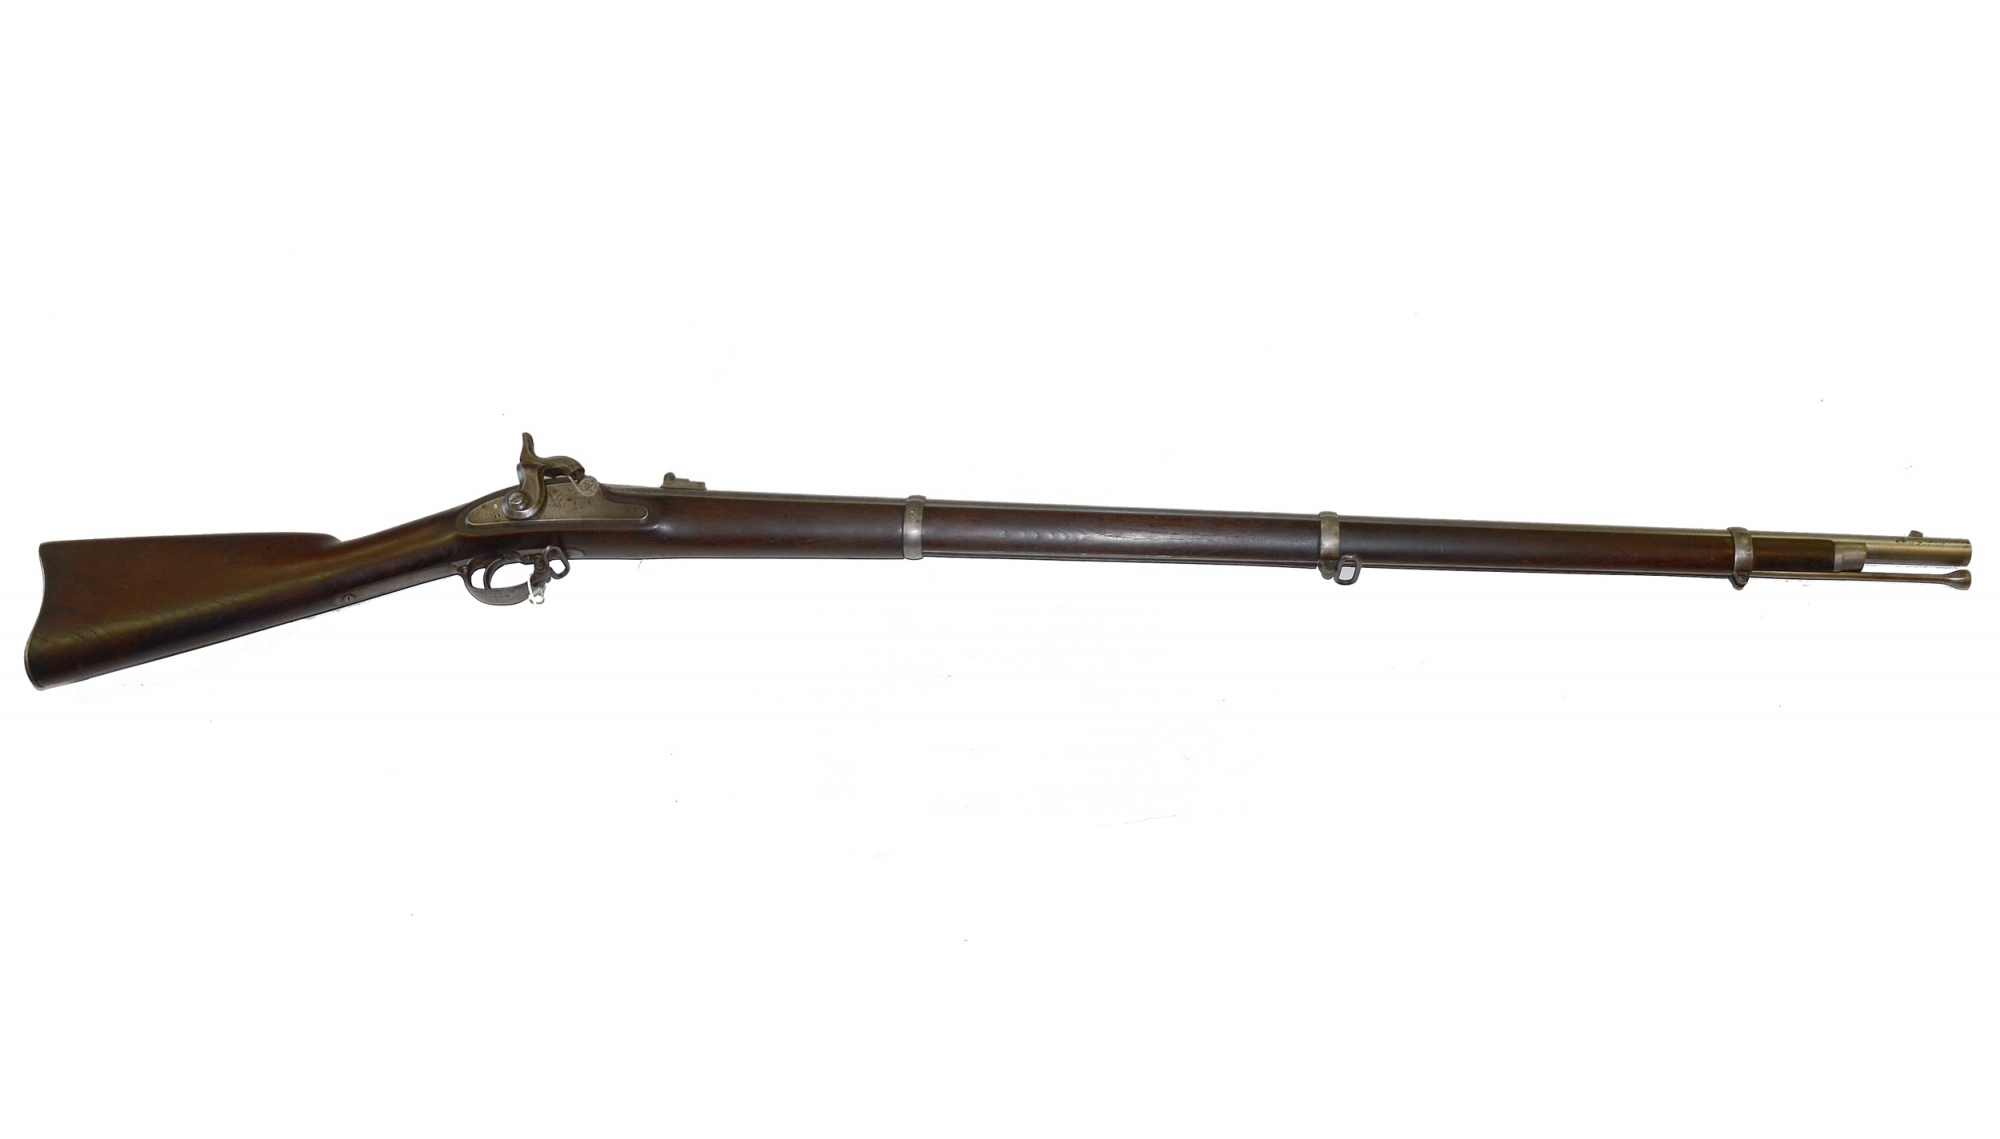 MODEL 1863 U.S. PERCUSSION RIFLE – MUSKET TYPE I